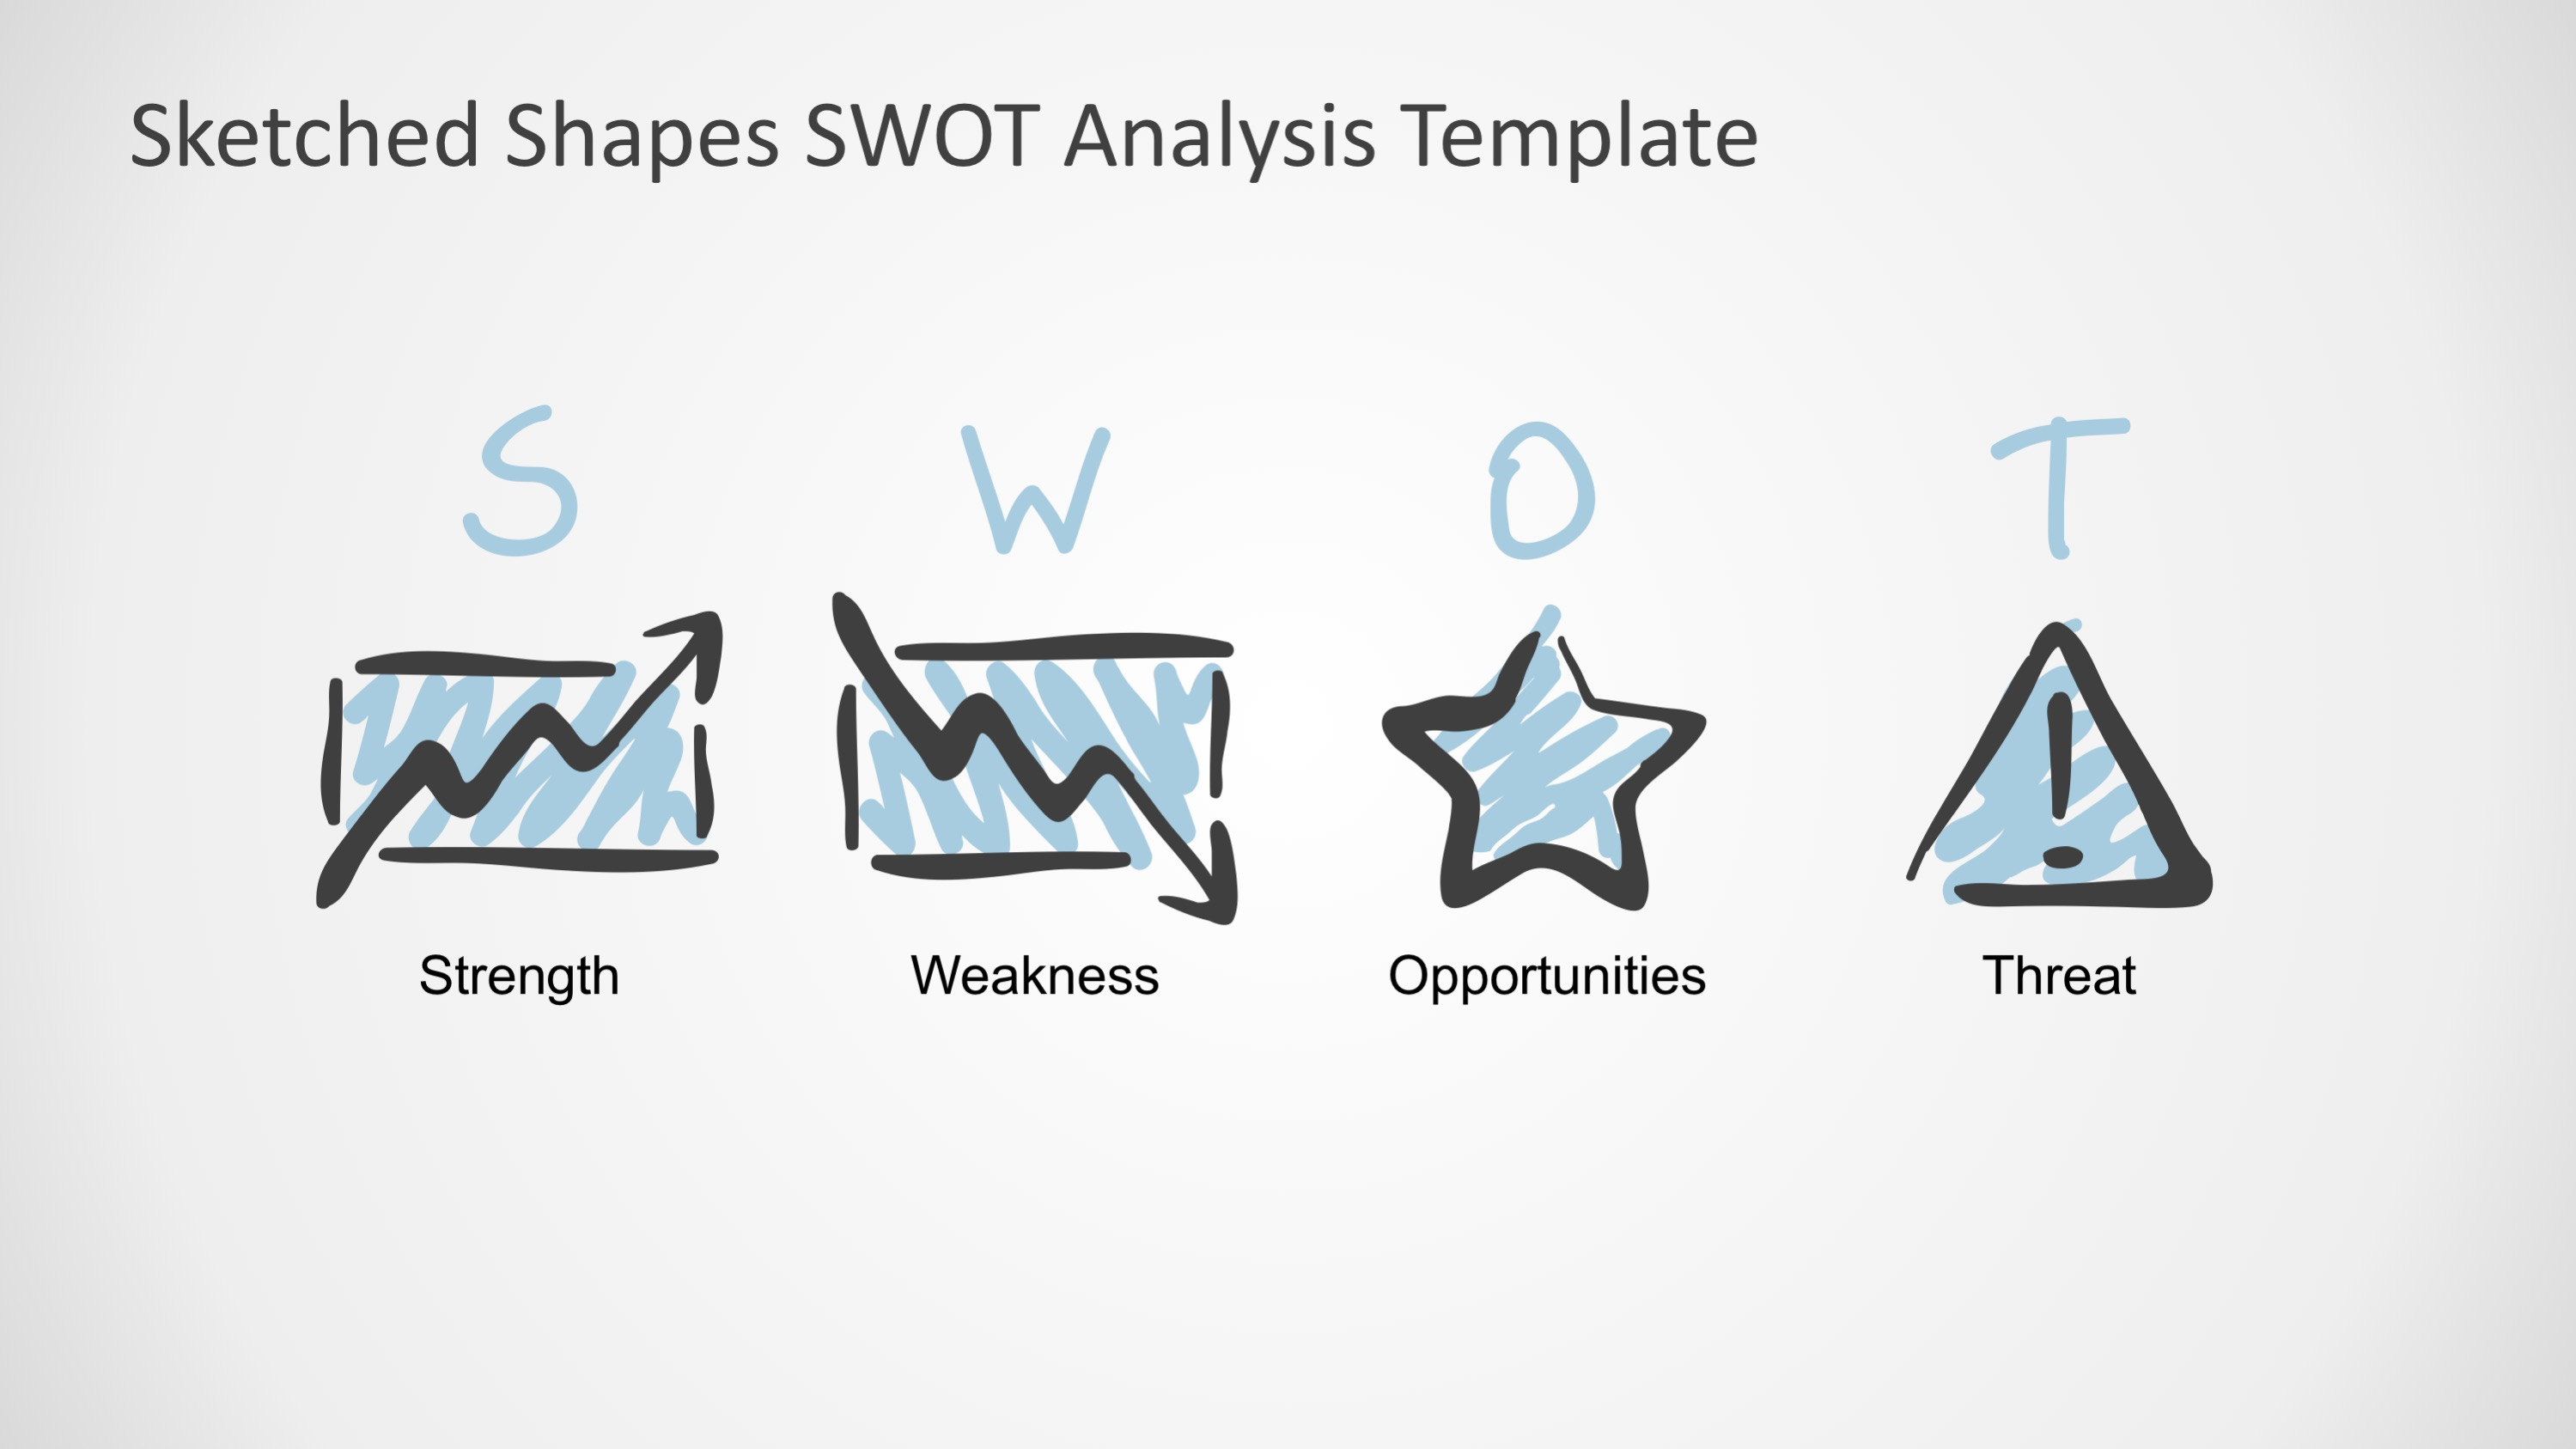 PPT SWOT Analysis Template Crated with Sketch